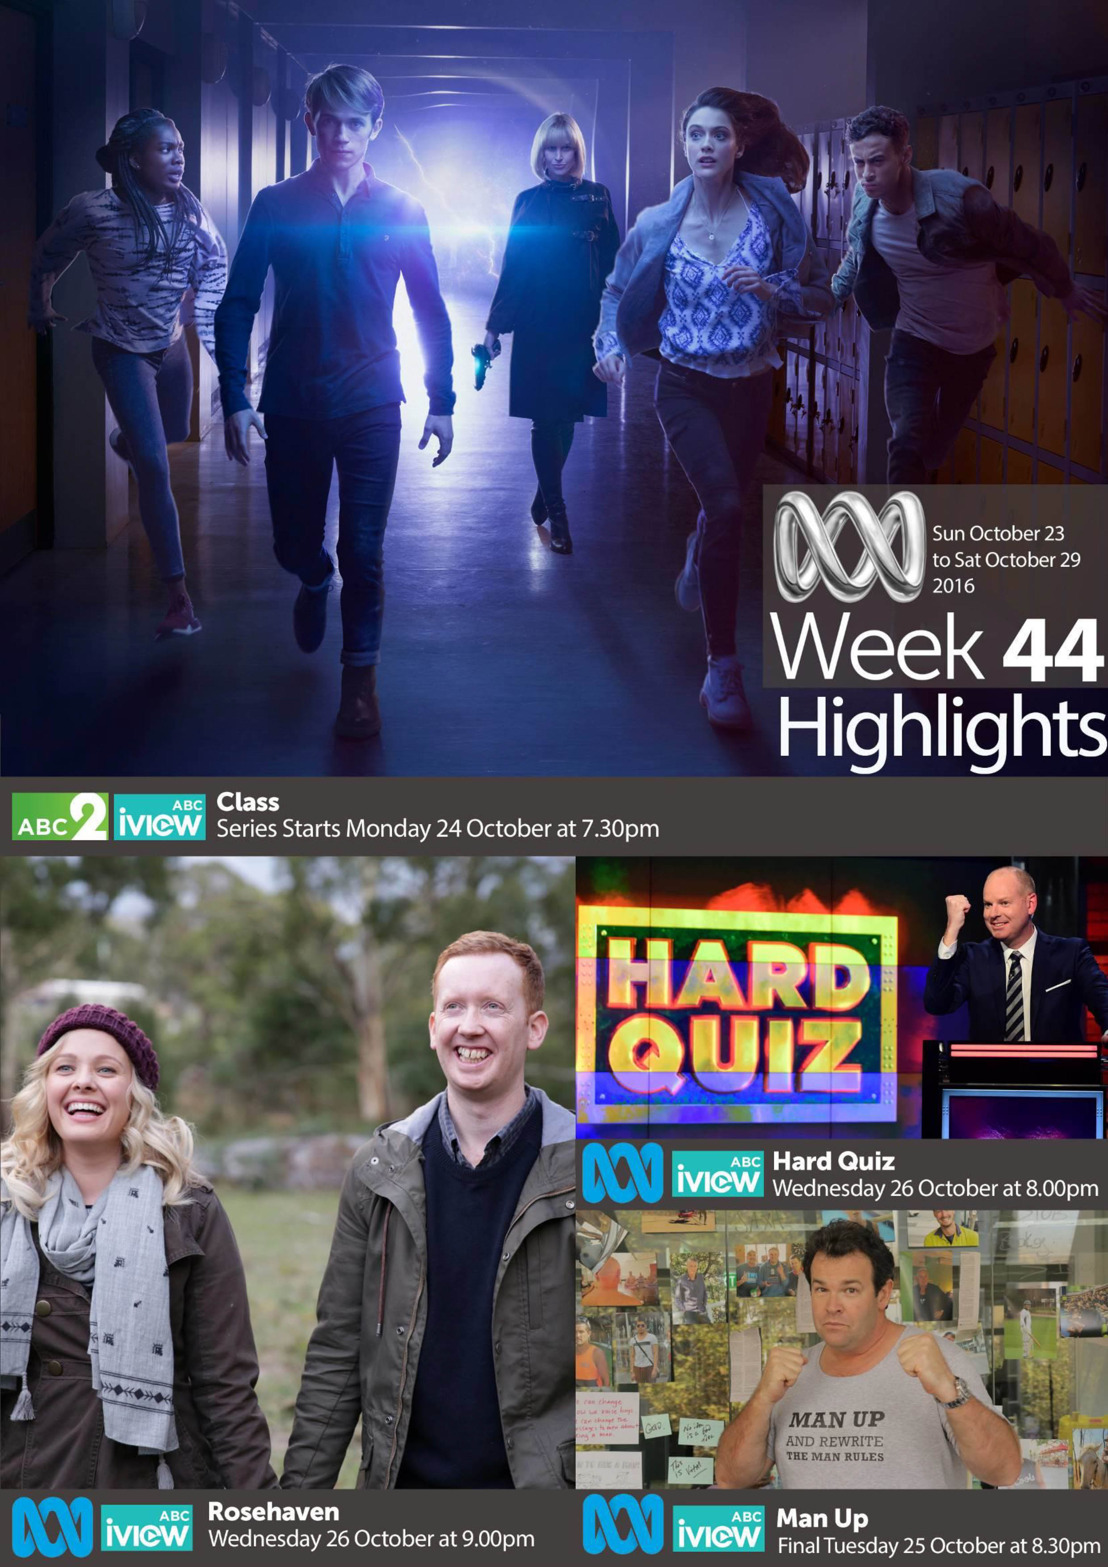 ABC Program Highlights - Week 44